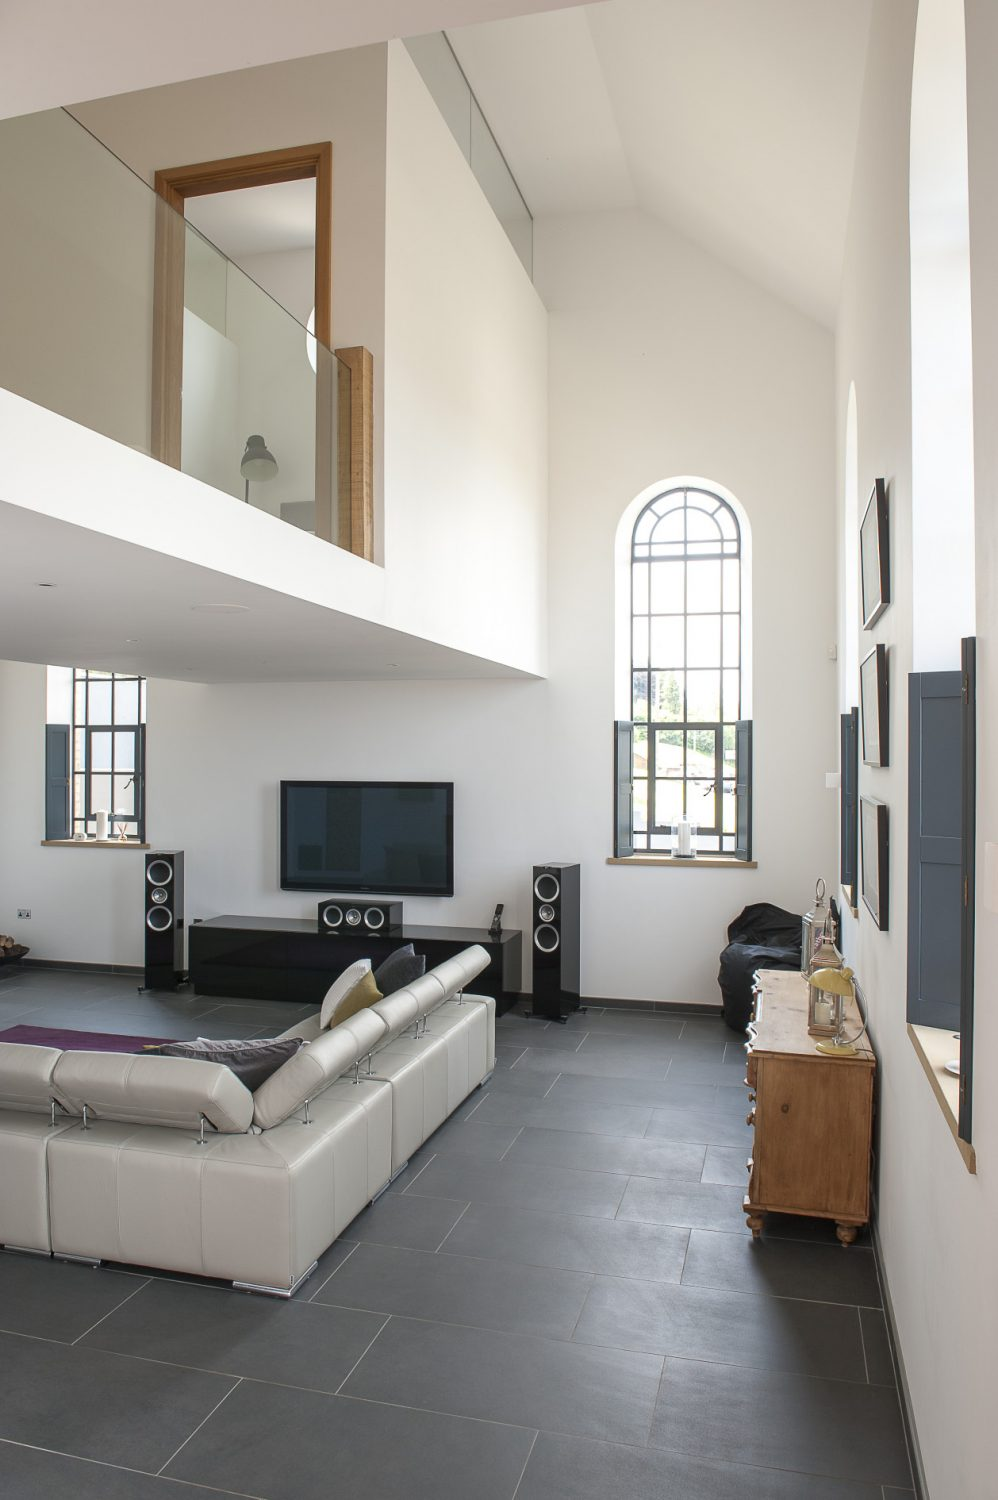 Nick and Sonja were determined to keep the chapel windows as single entities. In order to do this, they divided the living room into three spaces, two soaring to the height of the windows at either end of the room and a centre section with a lower ceiling which provides for second floor accommodation